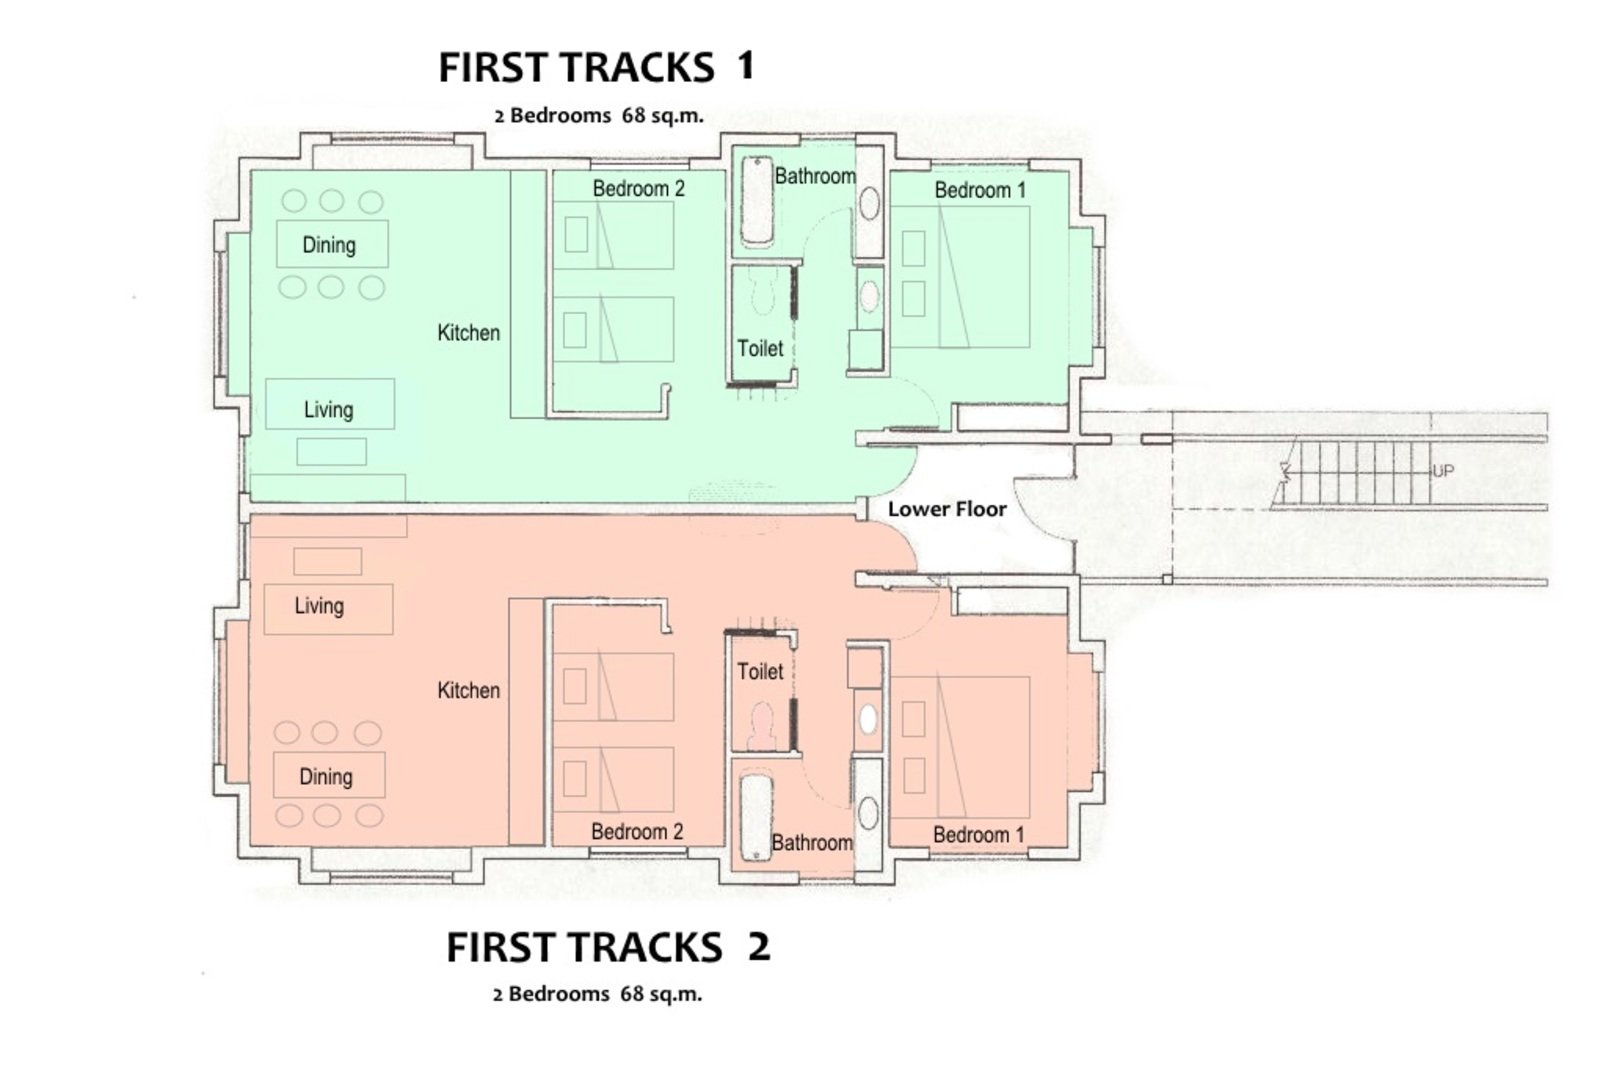 Ft1 2 floor plan revised large